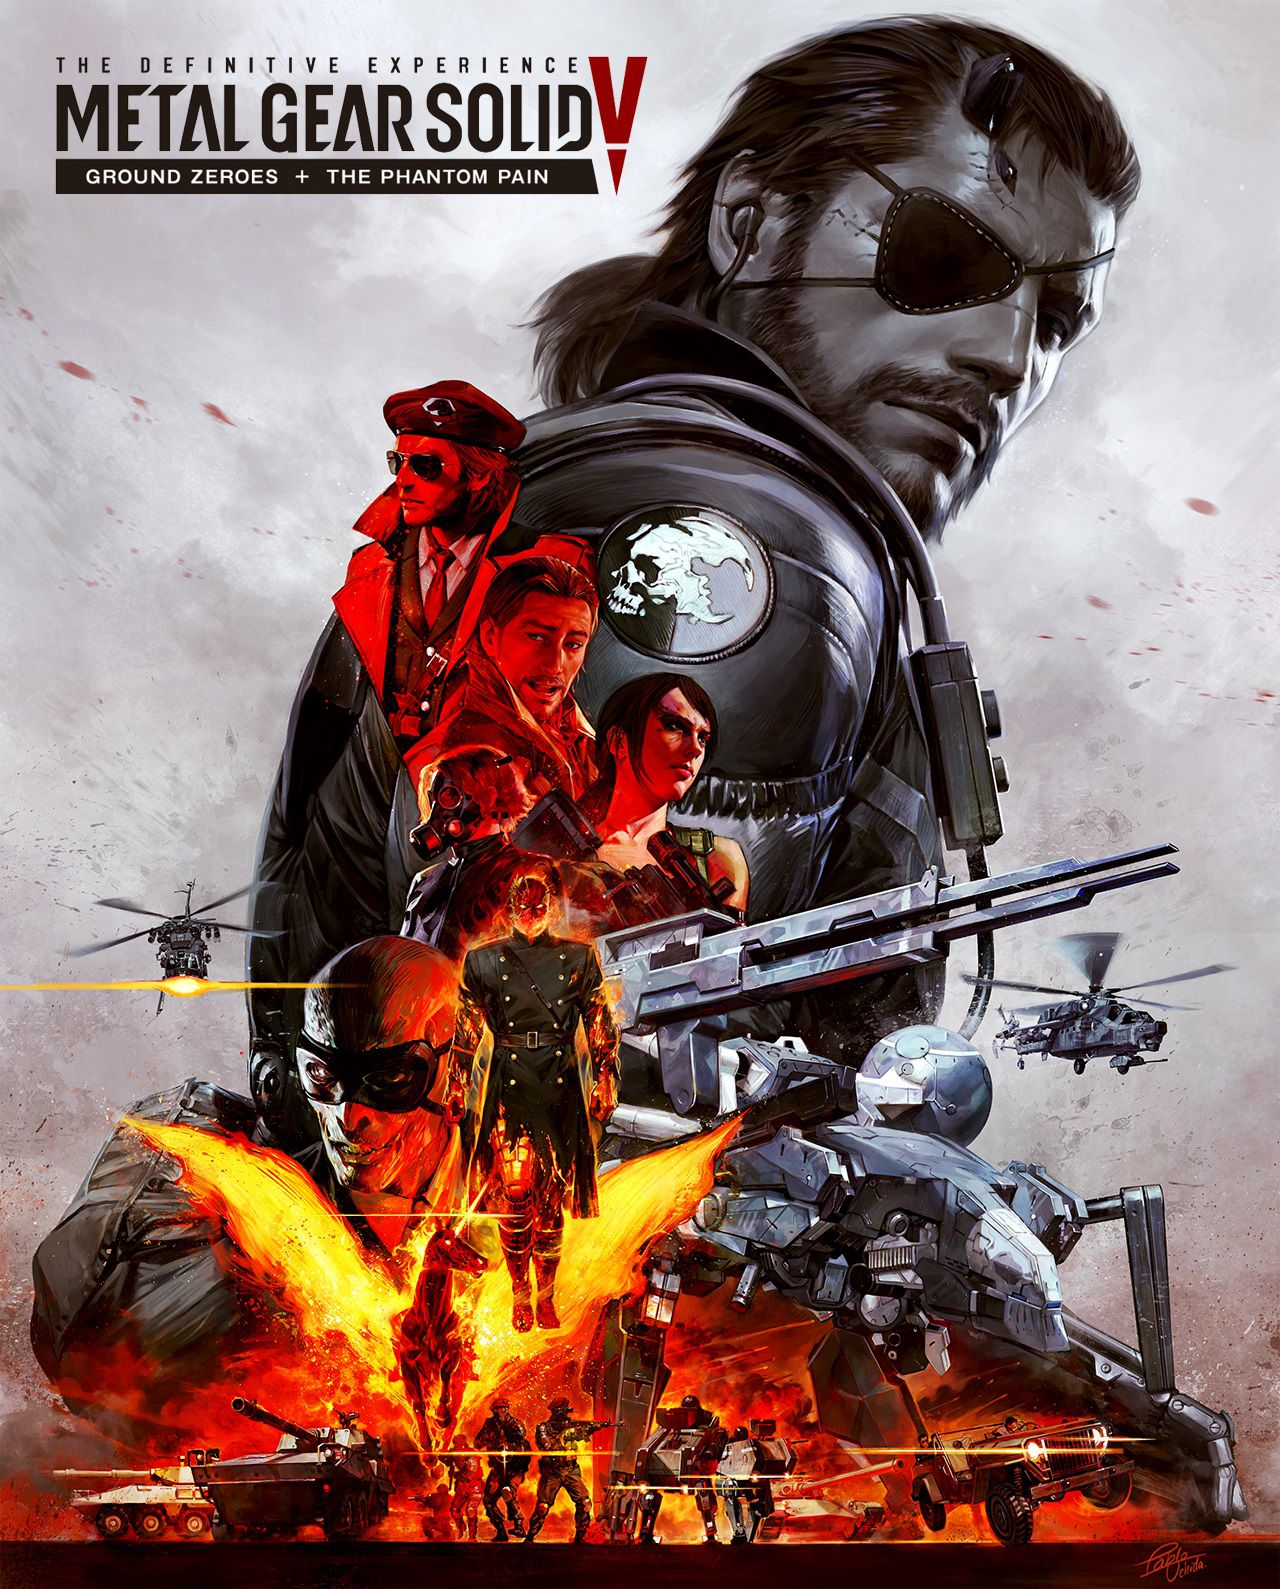 Metal Gear Solid V : The Definitive Experience (2016)  - Jeu vidéo streaming VF gratuit complet